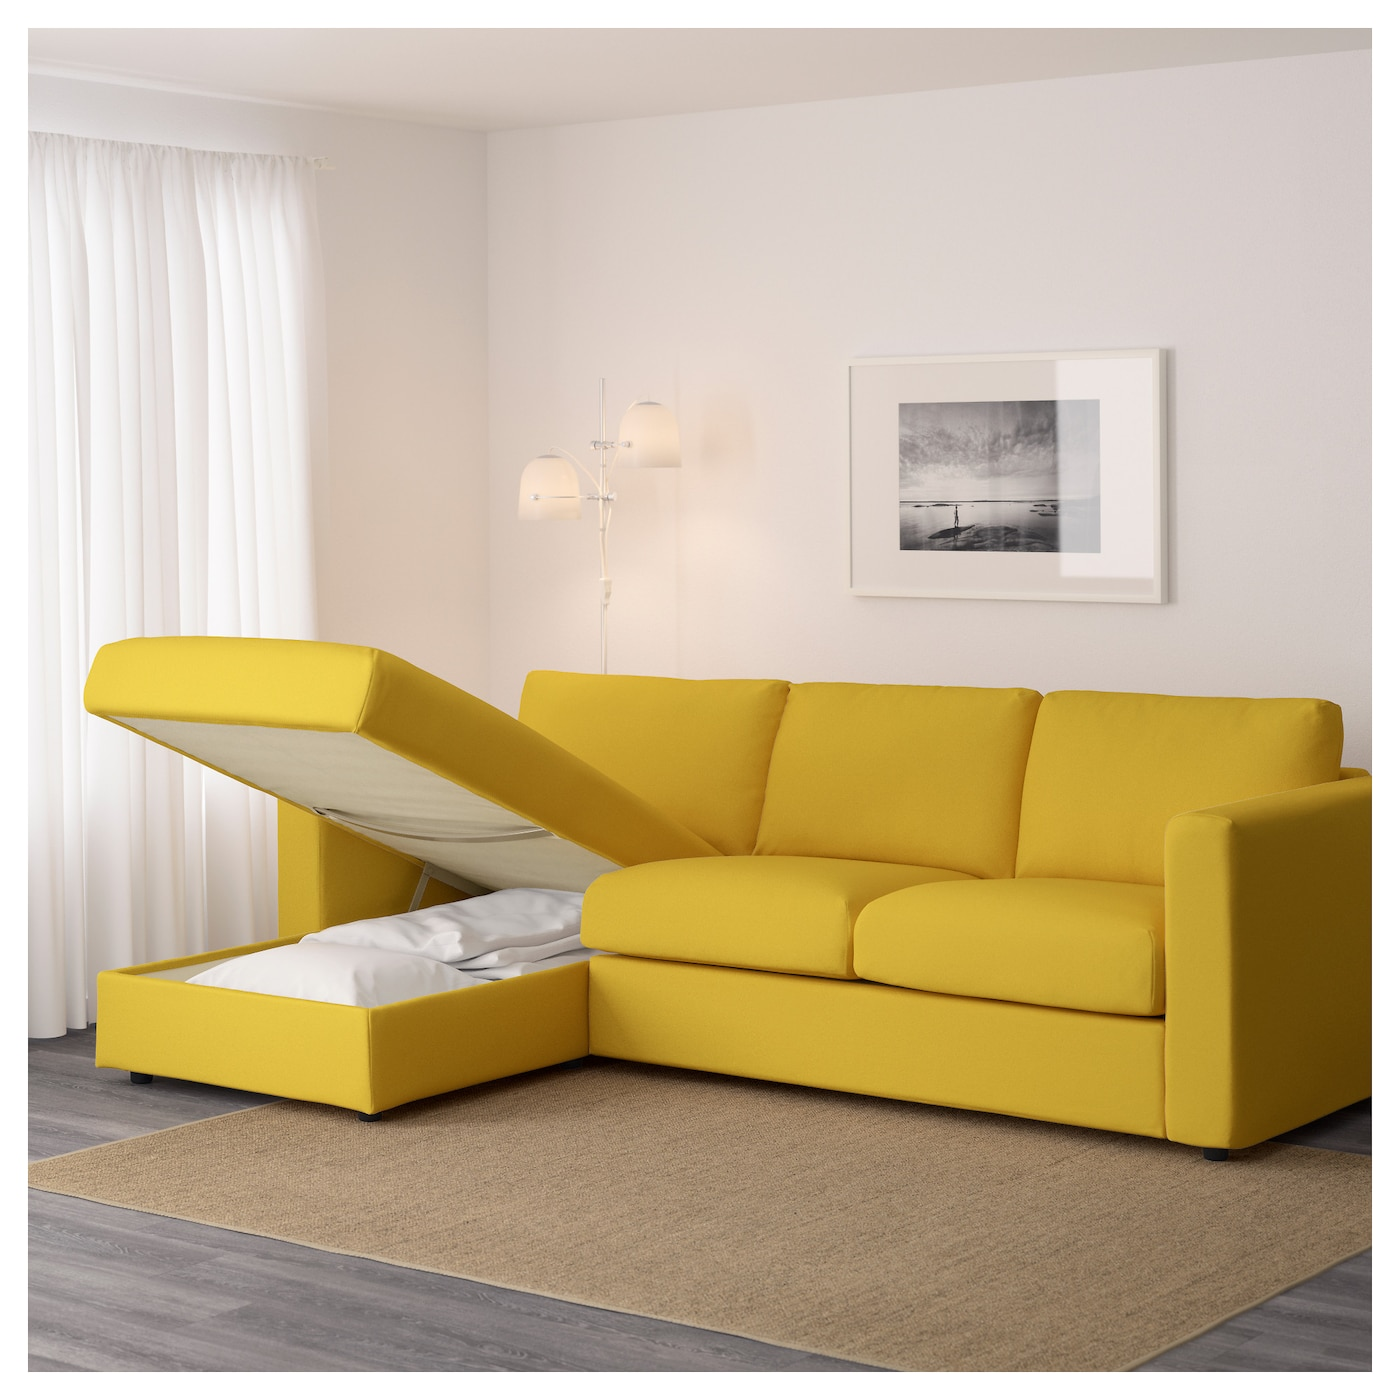 Vimle 3 Seat Sofa With Chaise Longue Gr 228 Sbo Golden Yellow